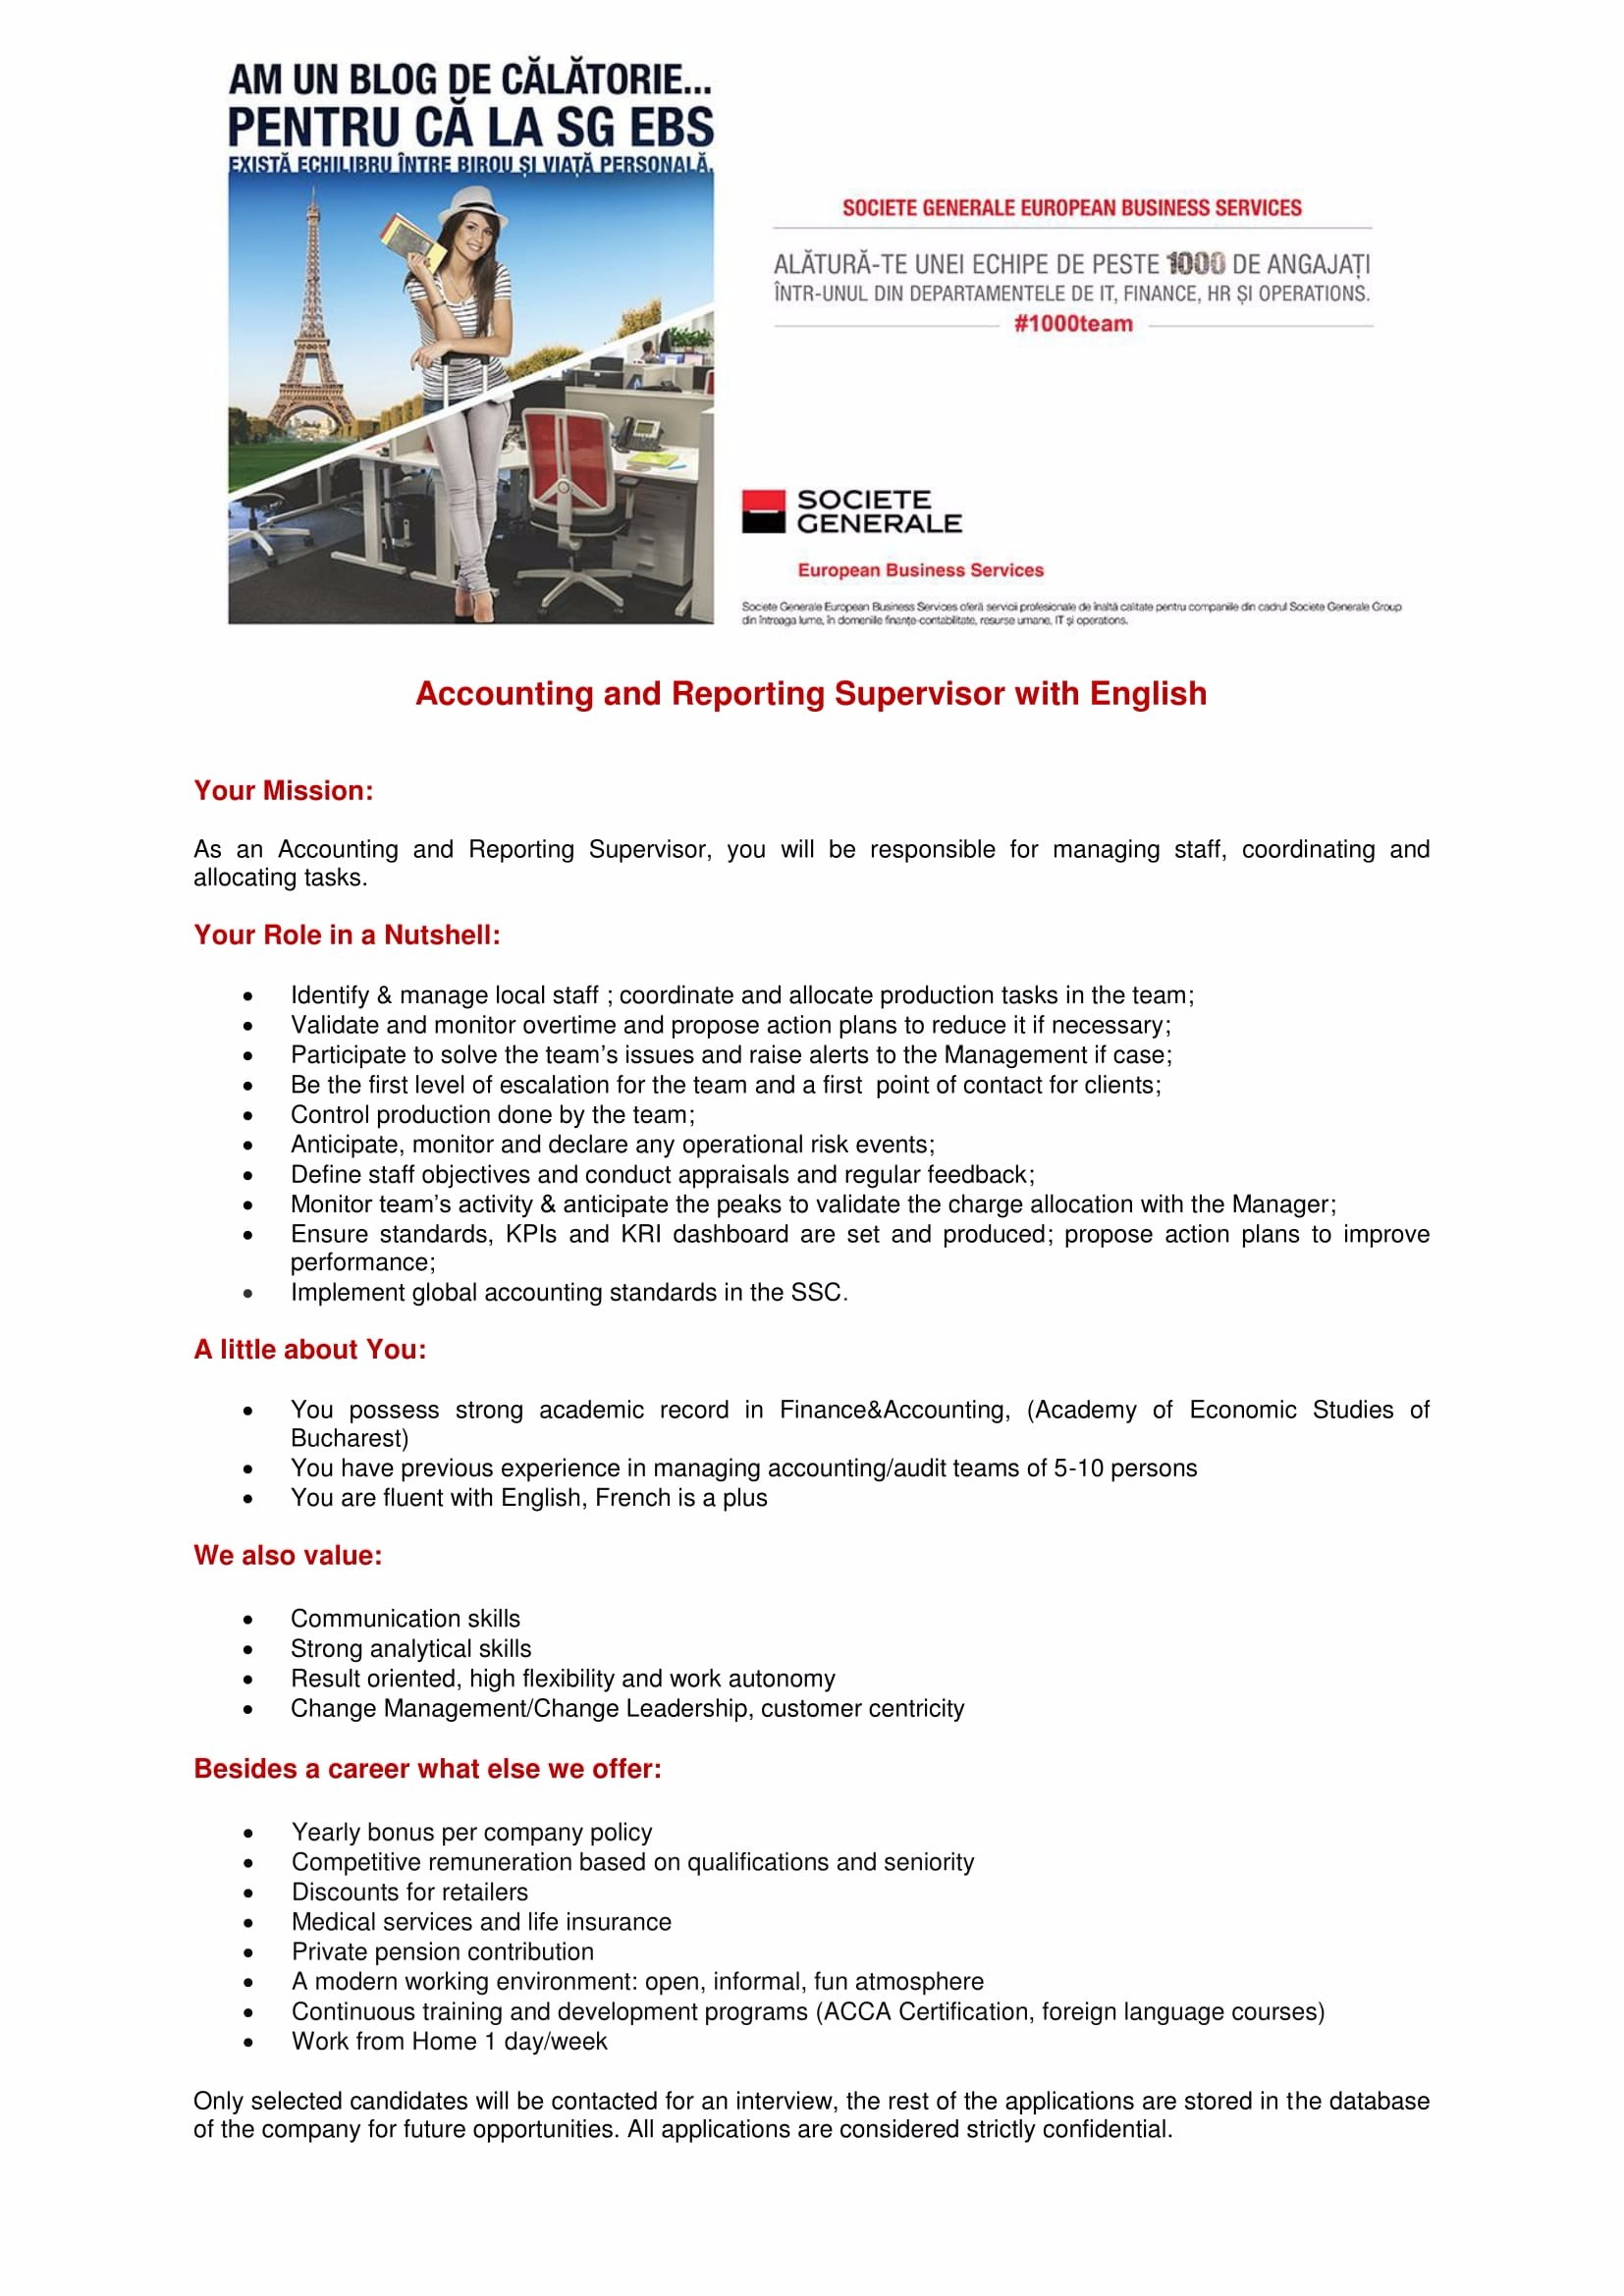 Accounting and Reporting Supervisor with English-1